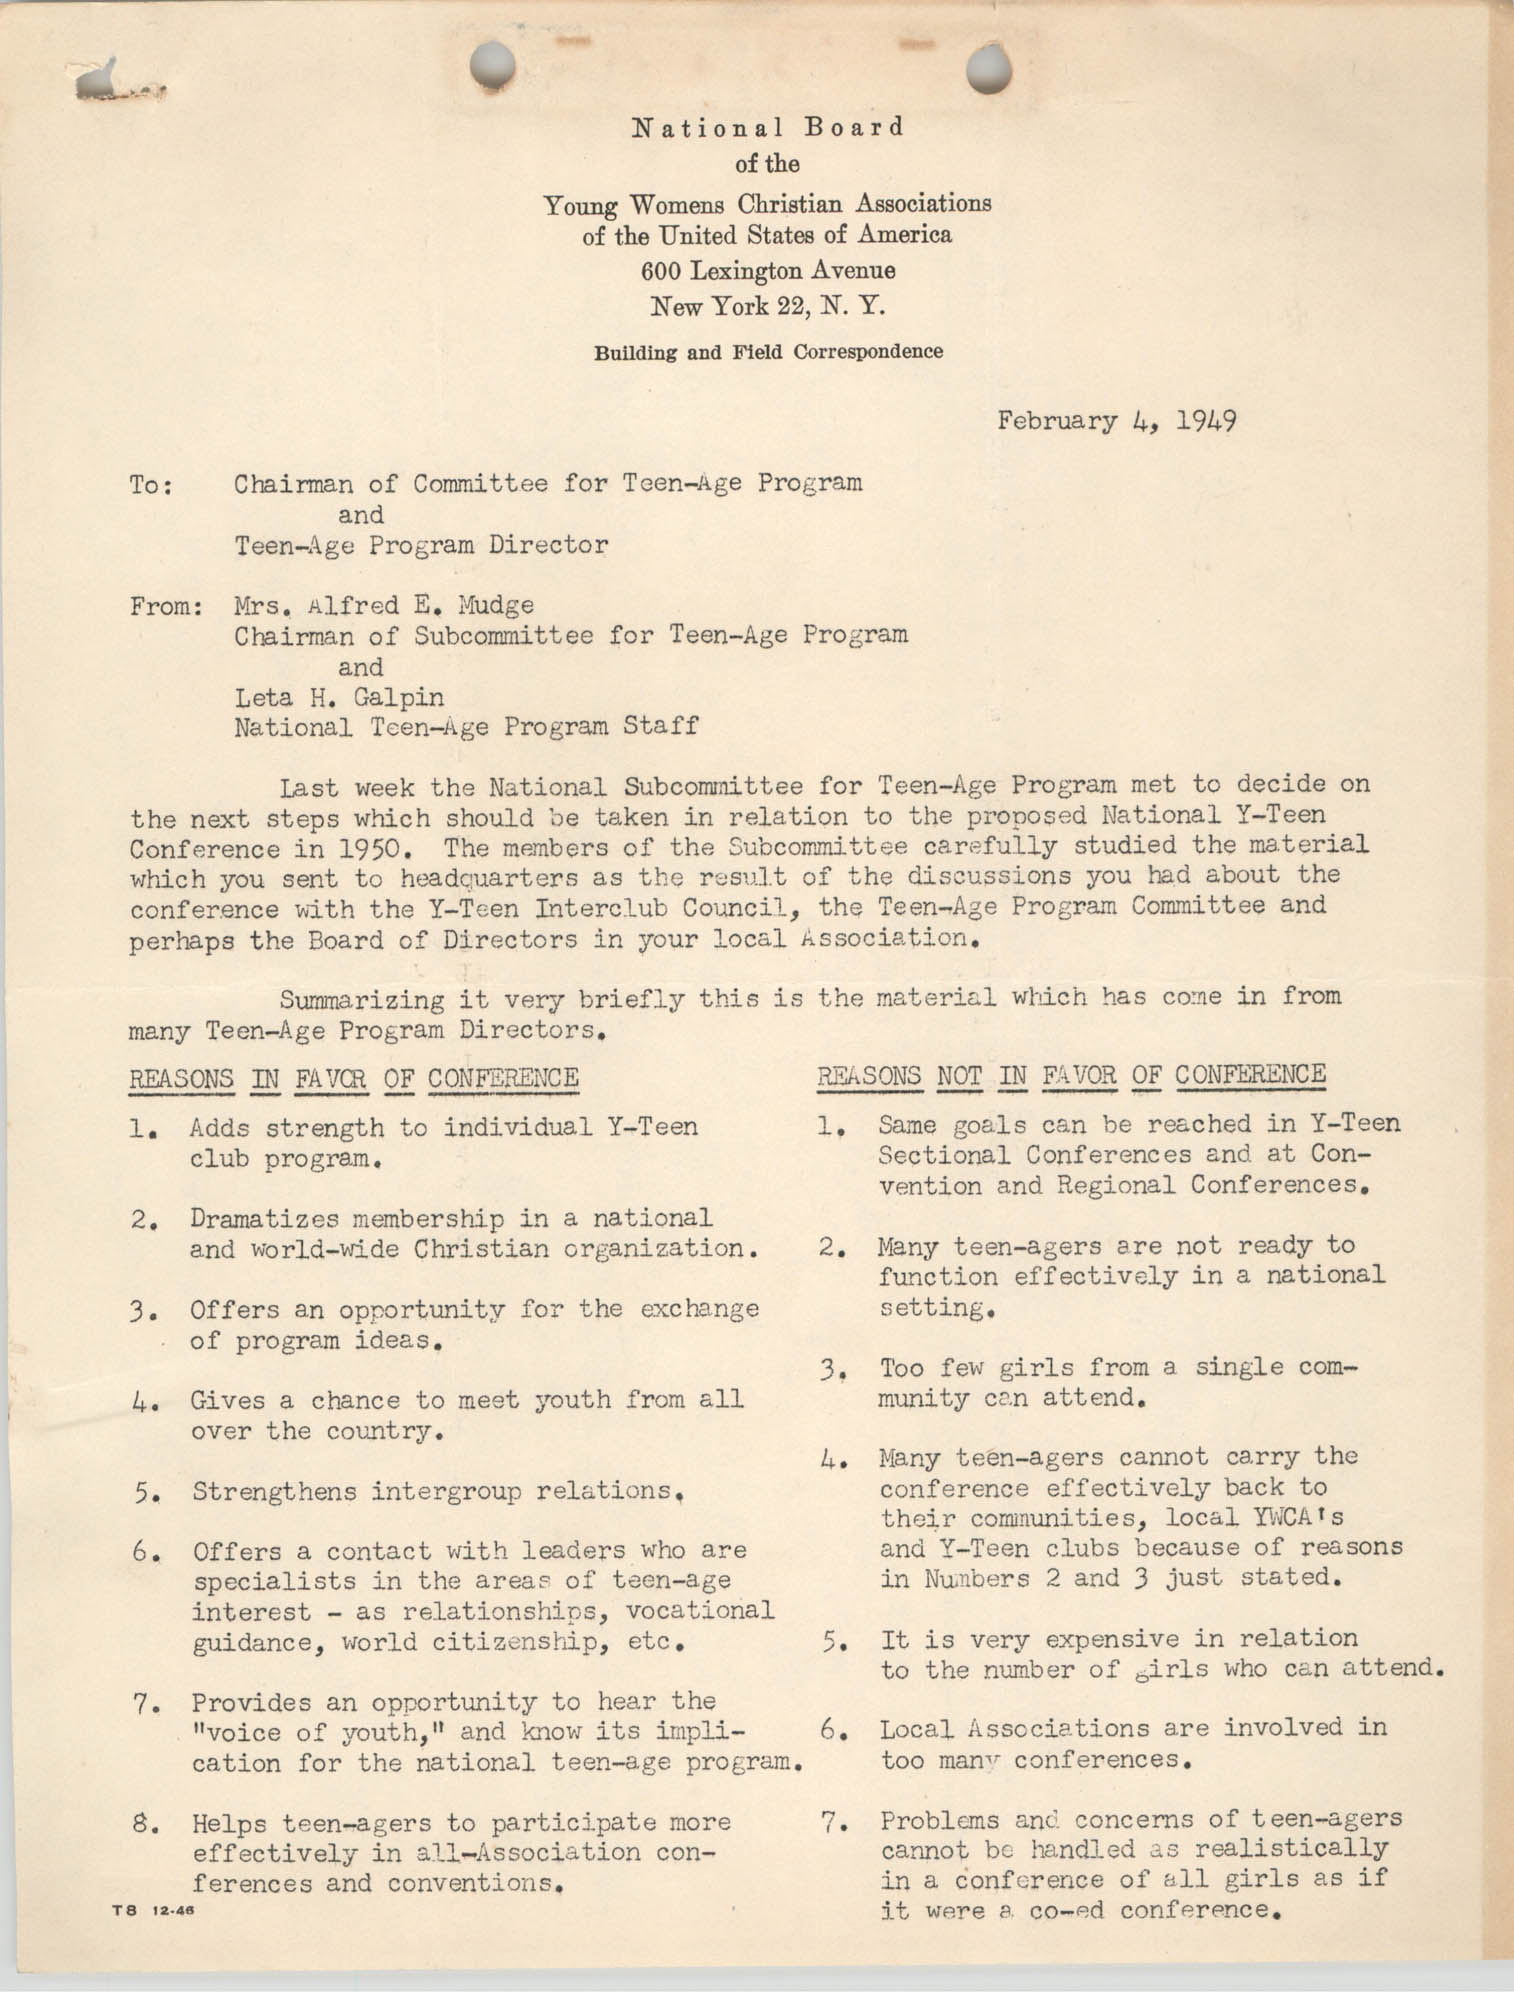 National Board of the Y.W.C.A. Memorandum, February 4, 1949